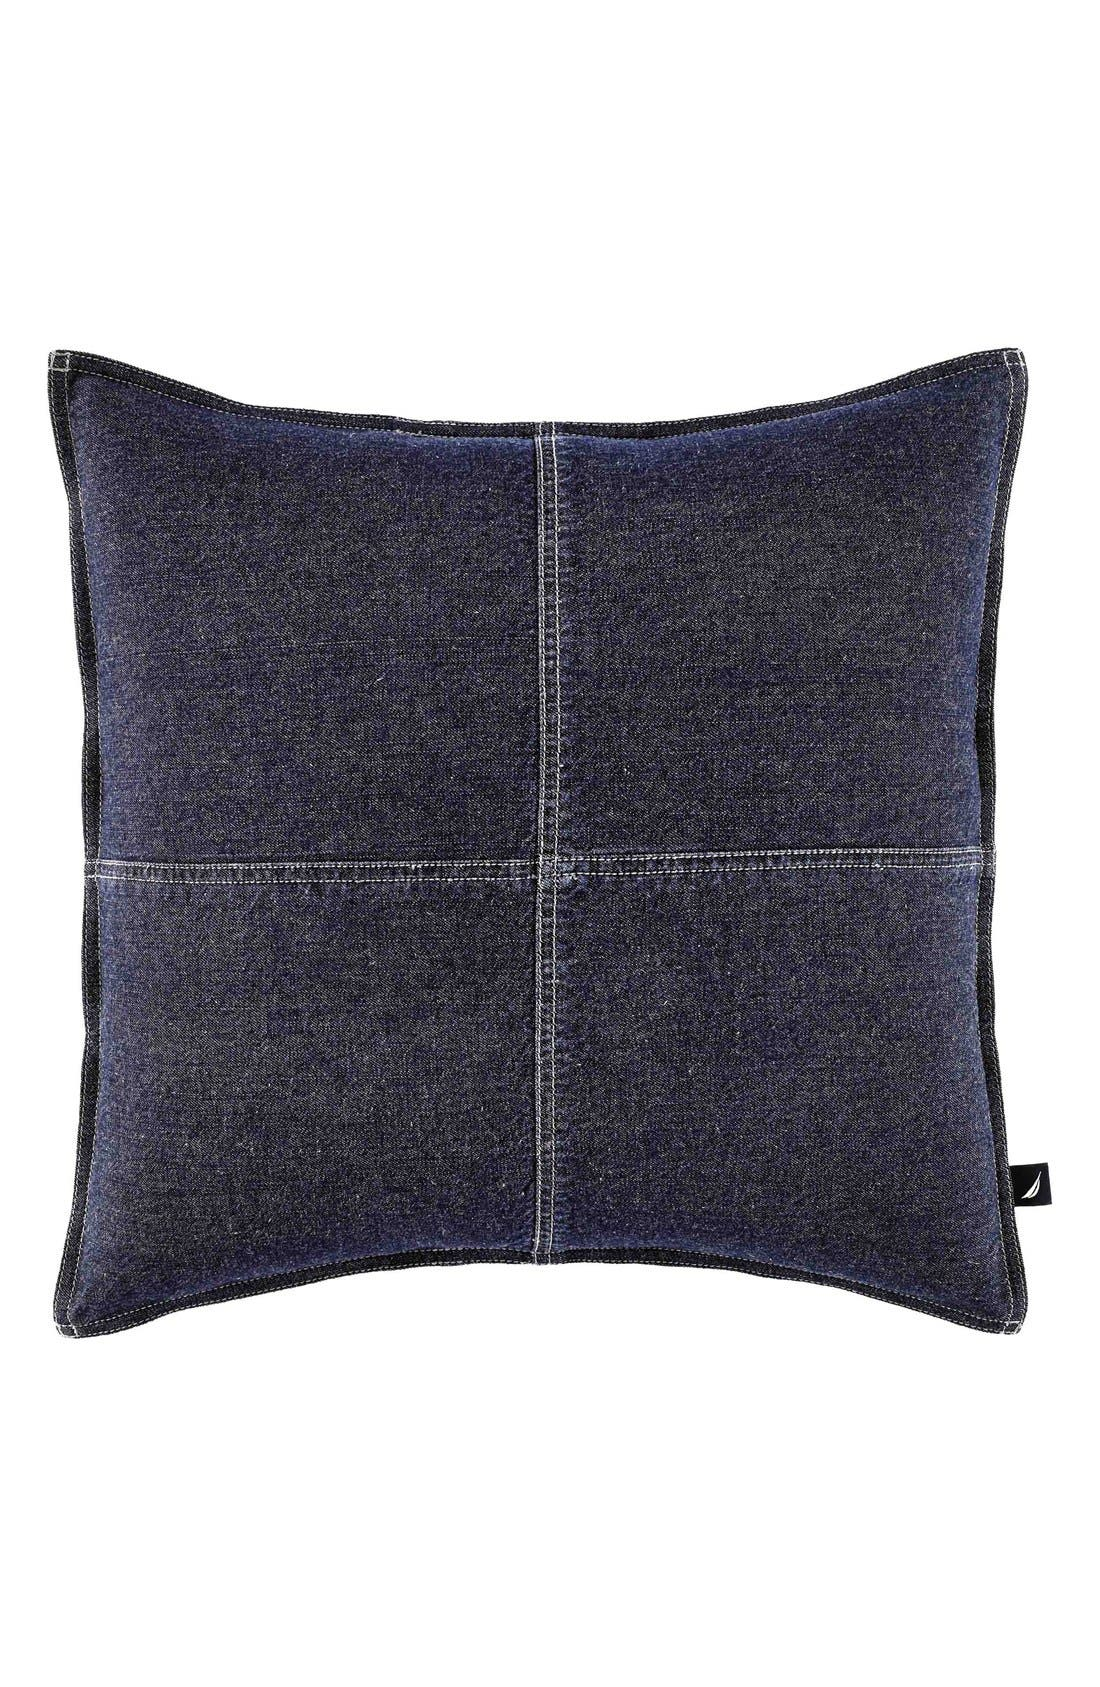 'Seaward' Pillow,                             Main thumbnail 1, color,                             408